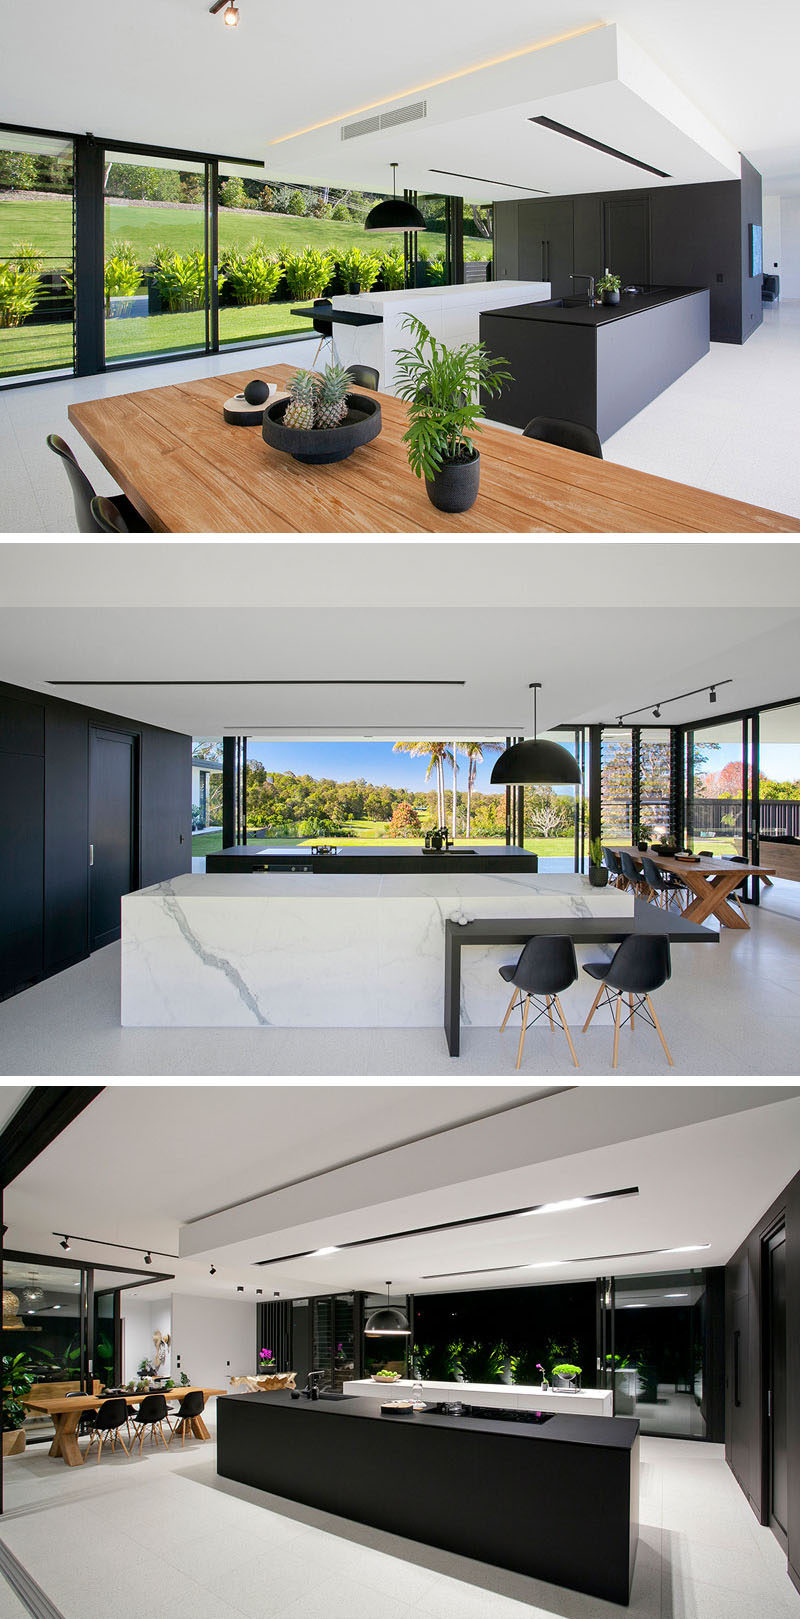 In this minimalist kitchen, fine matte black laminate and marble-look porcelain were used in the design of the islands, and a large black box hides the essentials of the kitchen. Inside there's plenty of storage, an additional butlers sink and extra prep space.